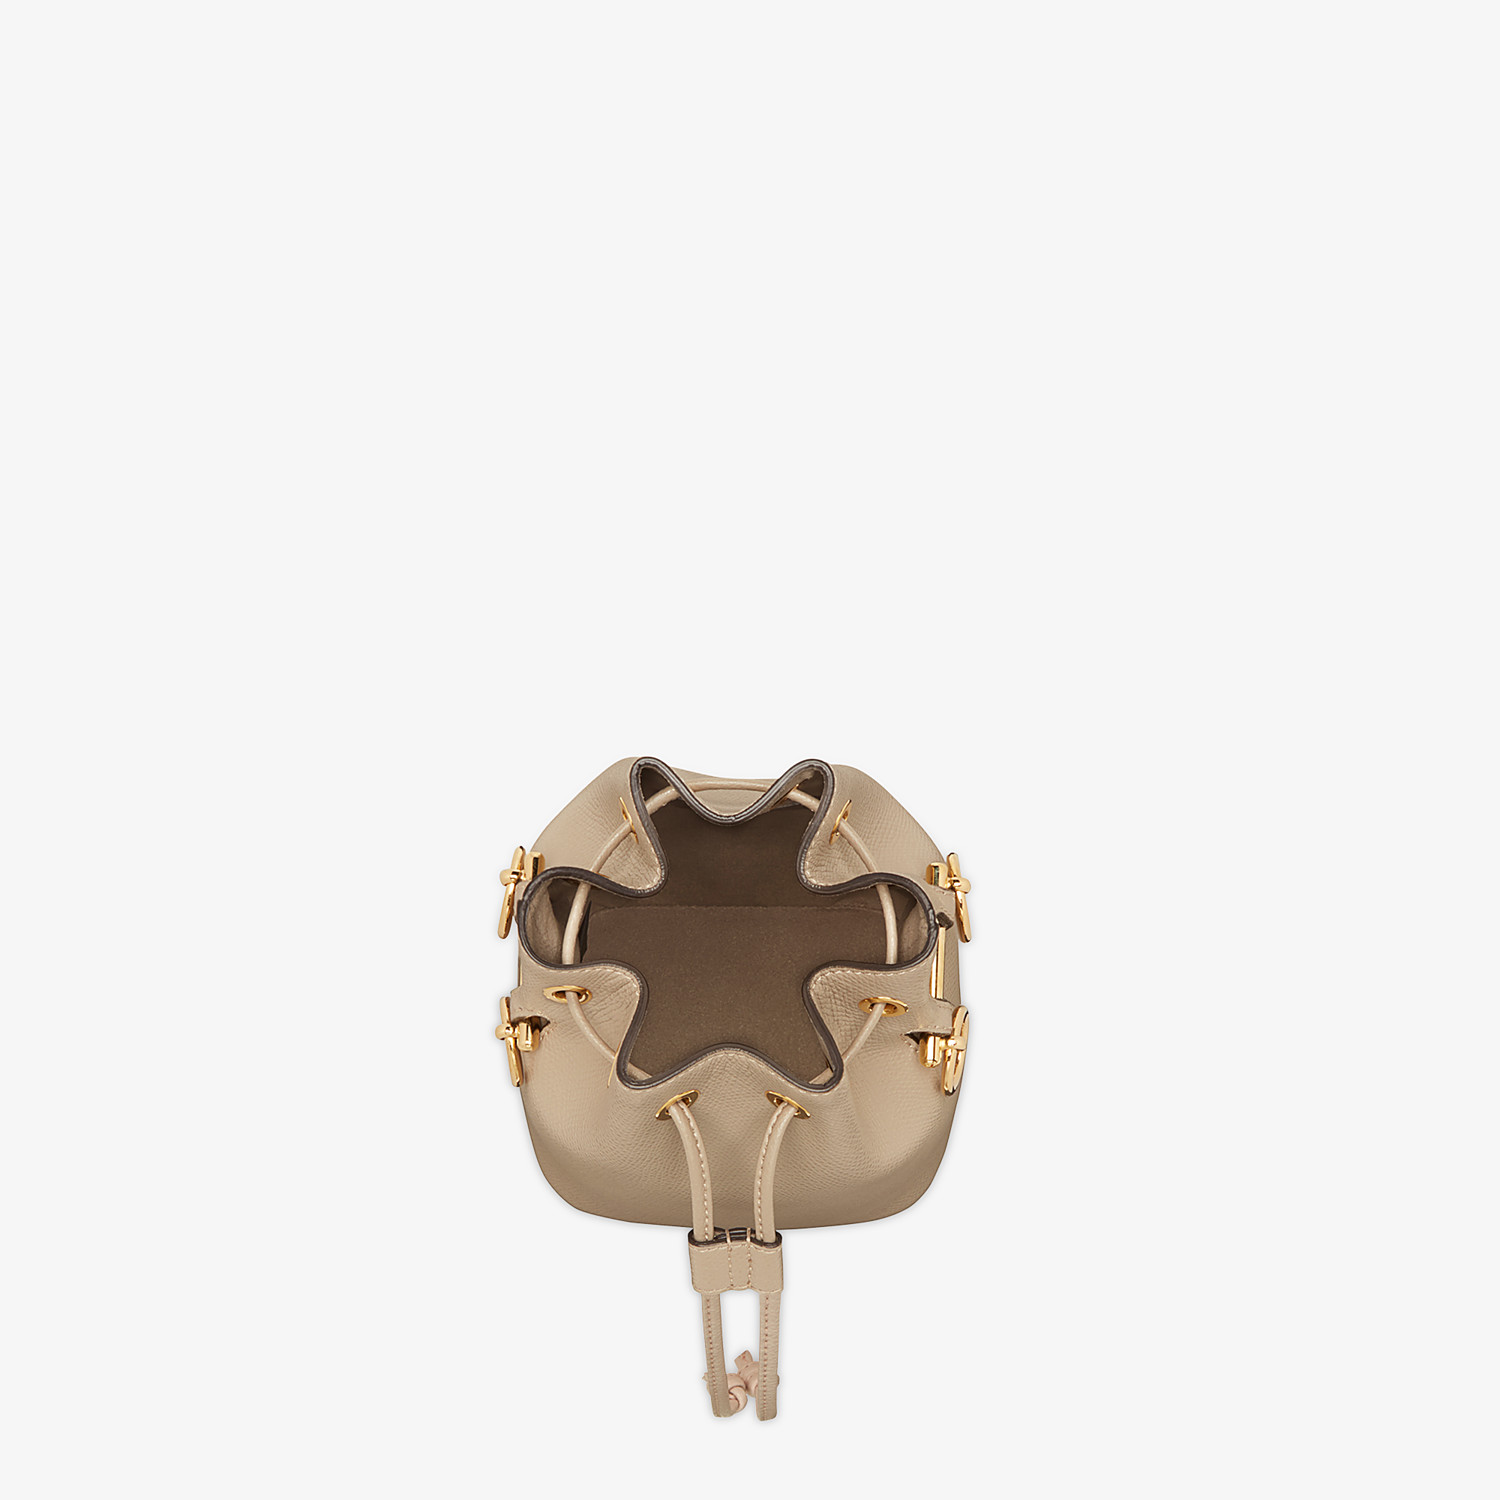 FENDI MON TRESOR - Beige leather mini-bag - view 4 detail